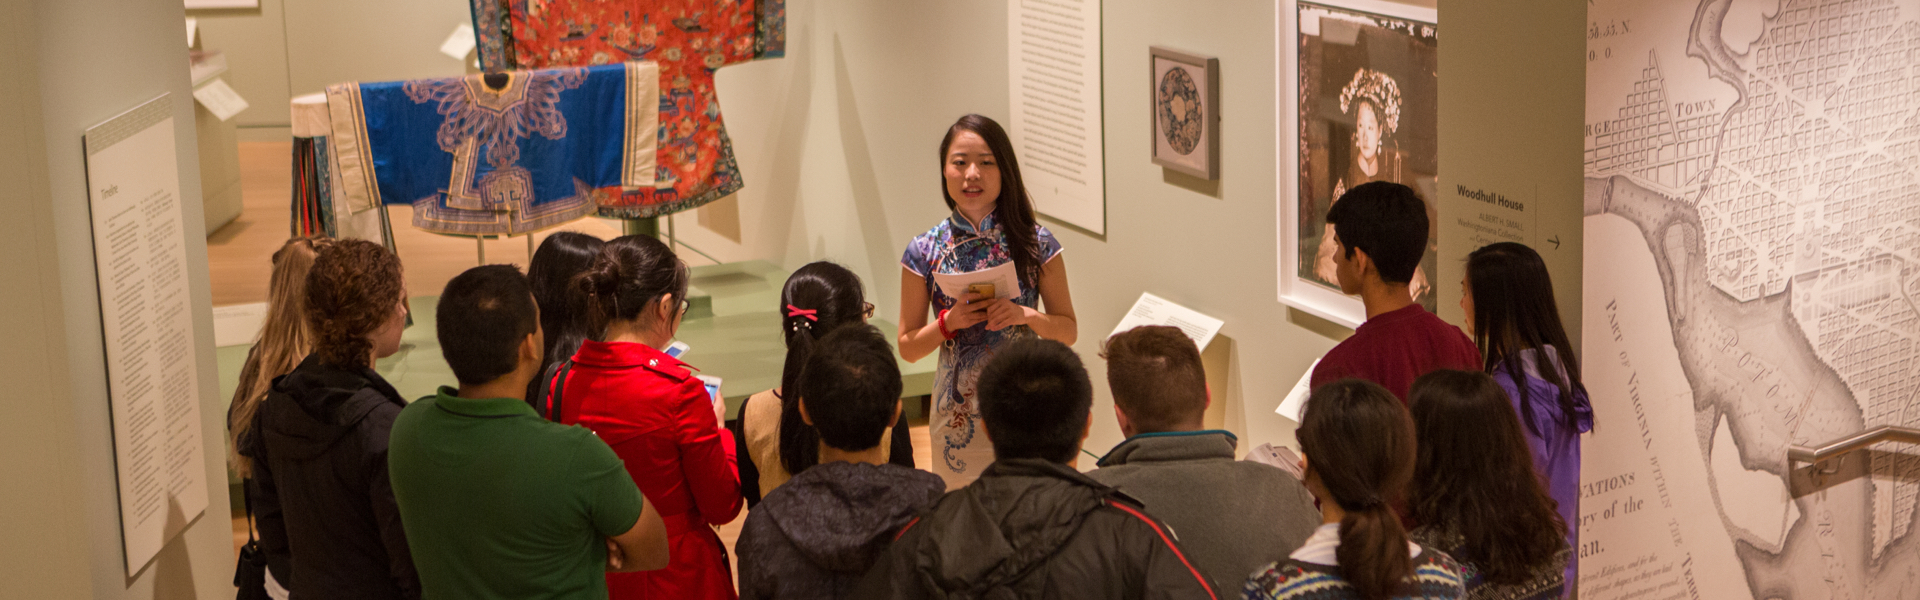 Woman talking to group of students in front of textiles